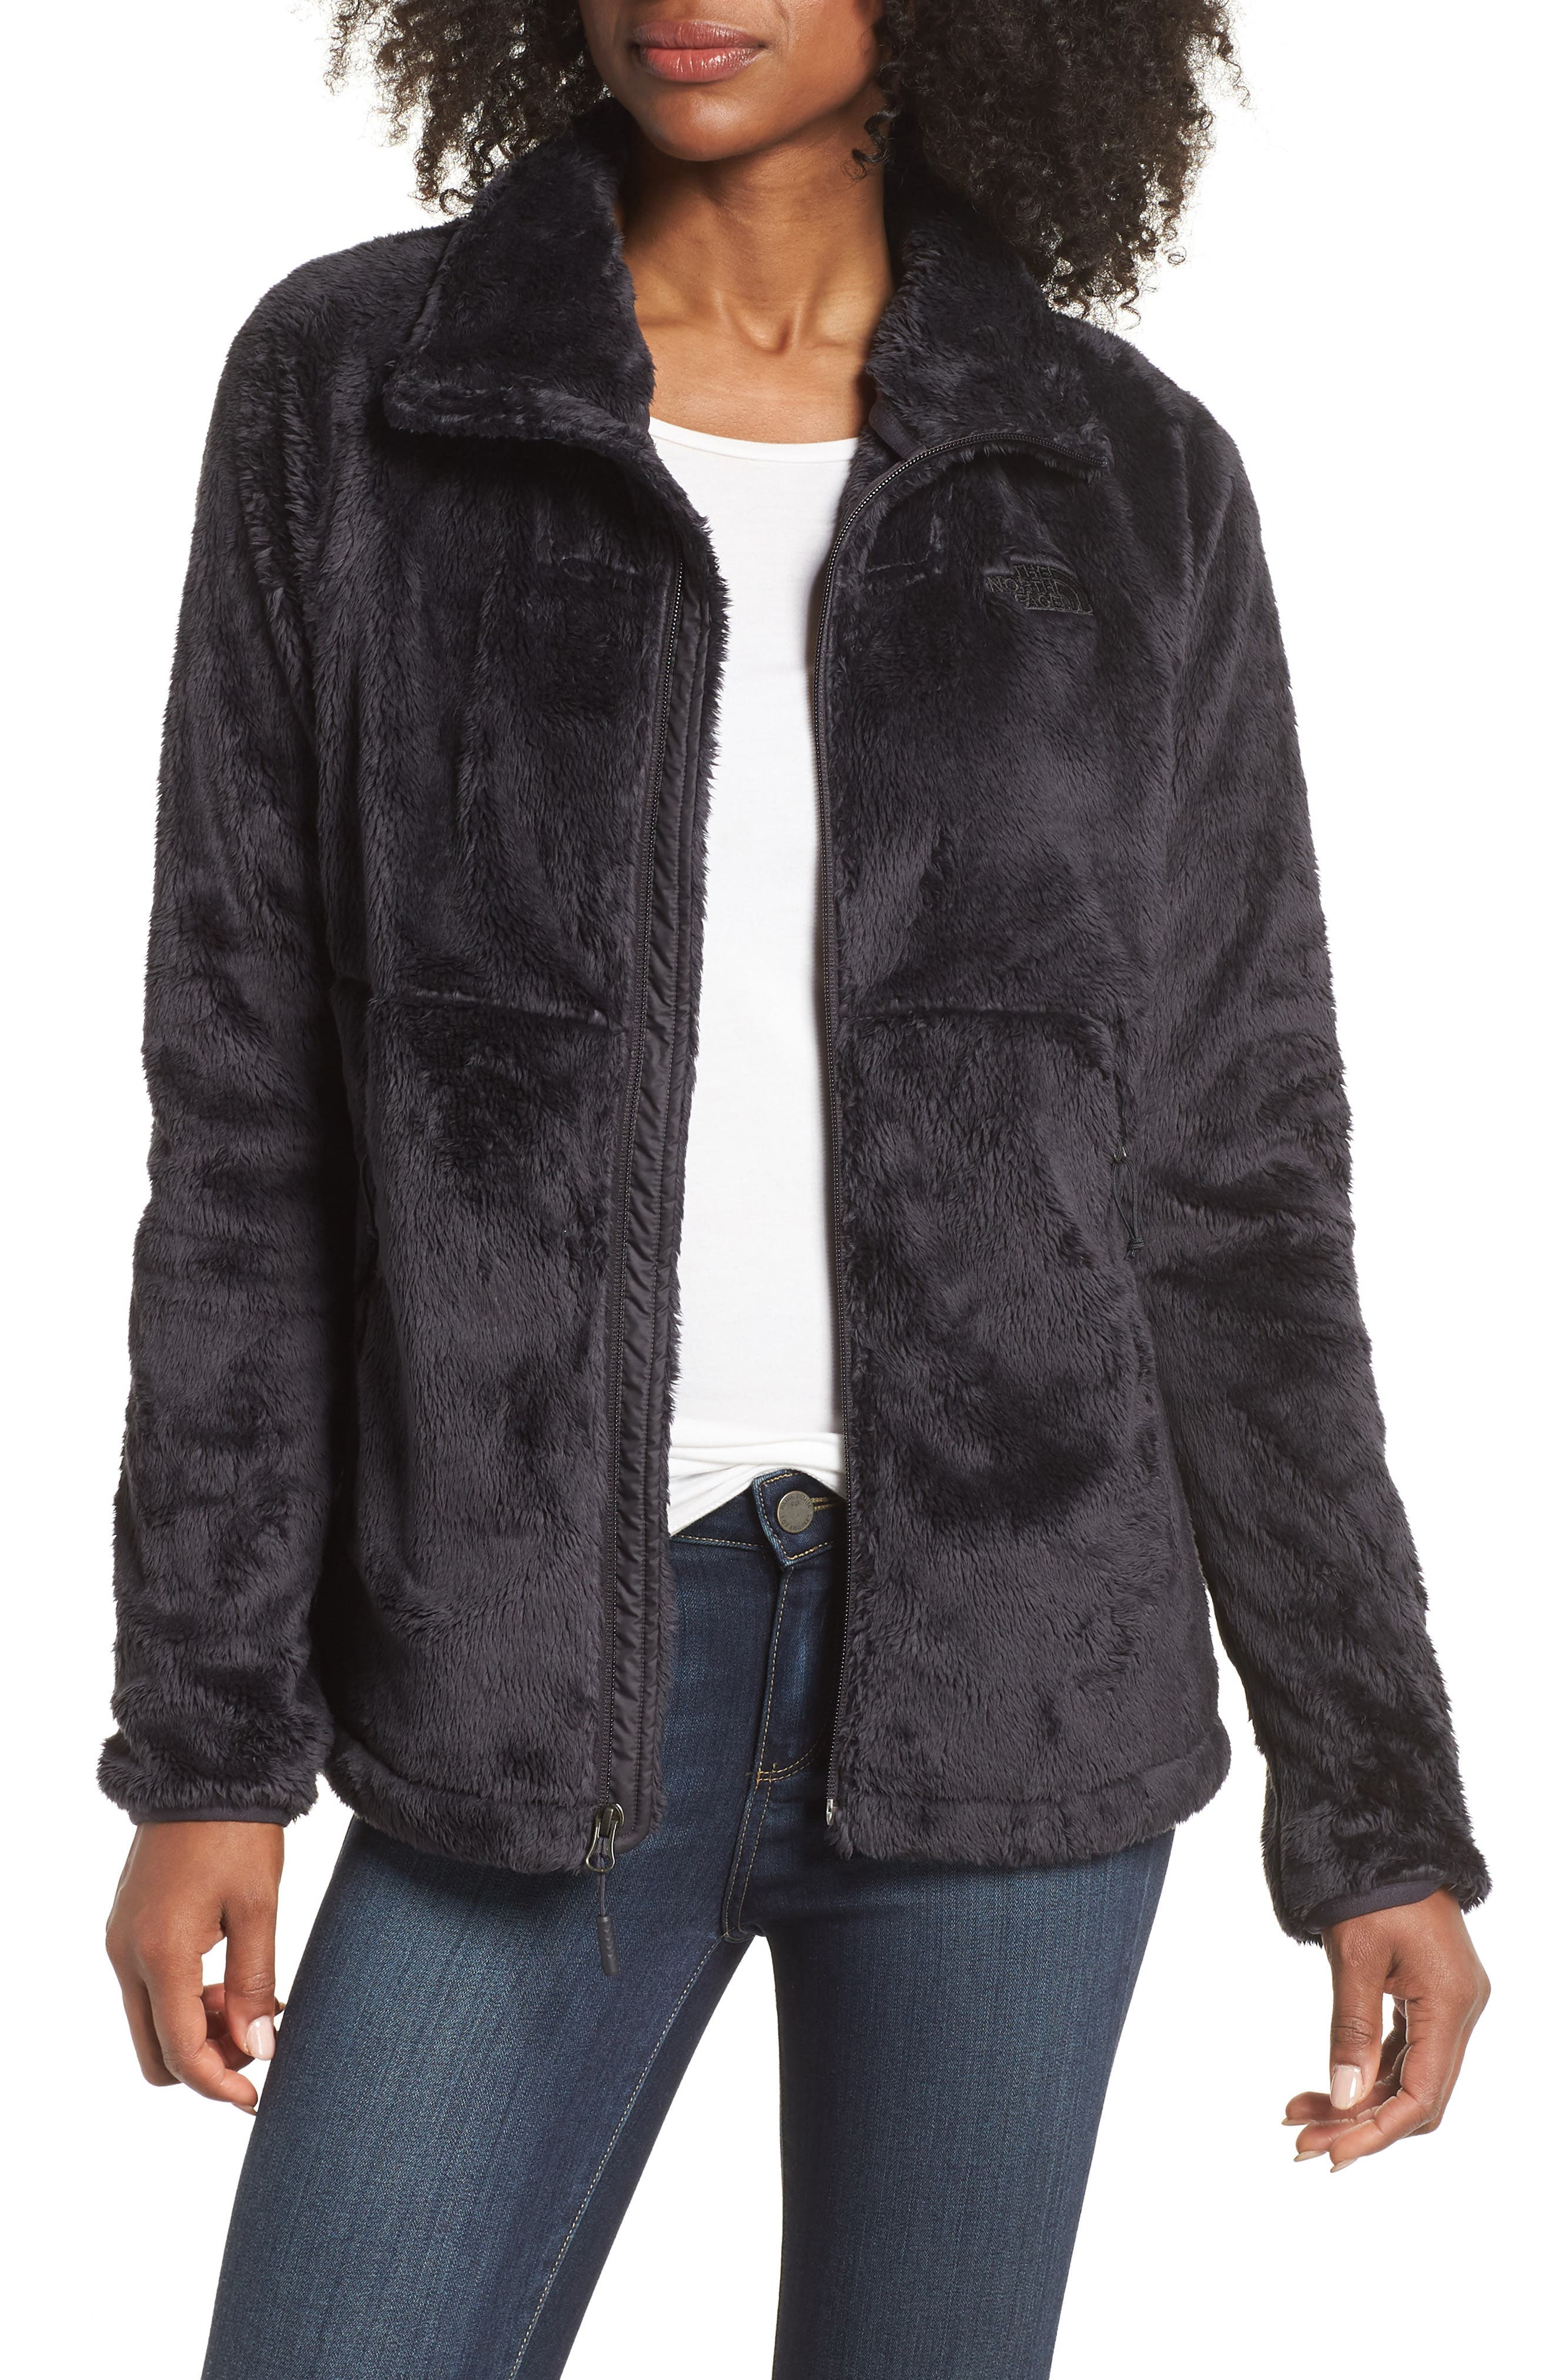 THE NORTH FACE, Osito Sport Hybrid Jacket, Main thumbnail 1, color, WEATHERED BLACK